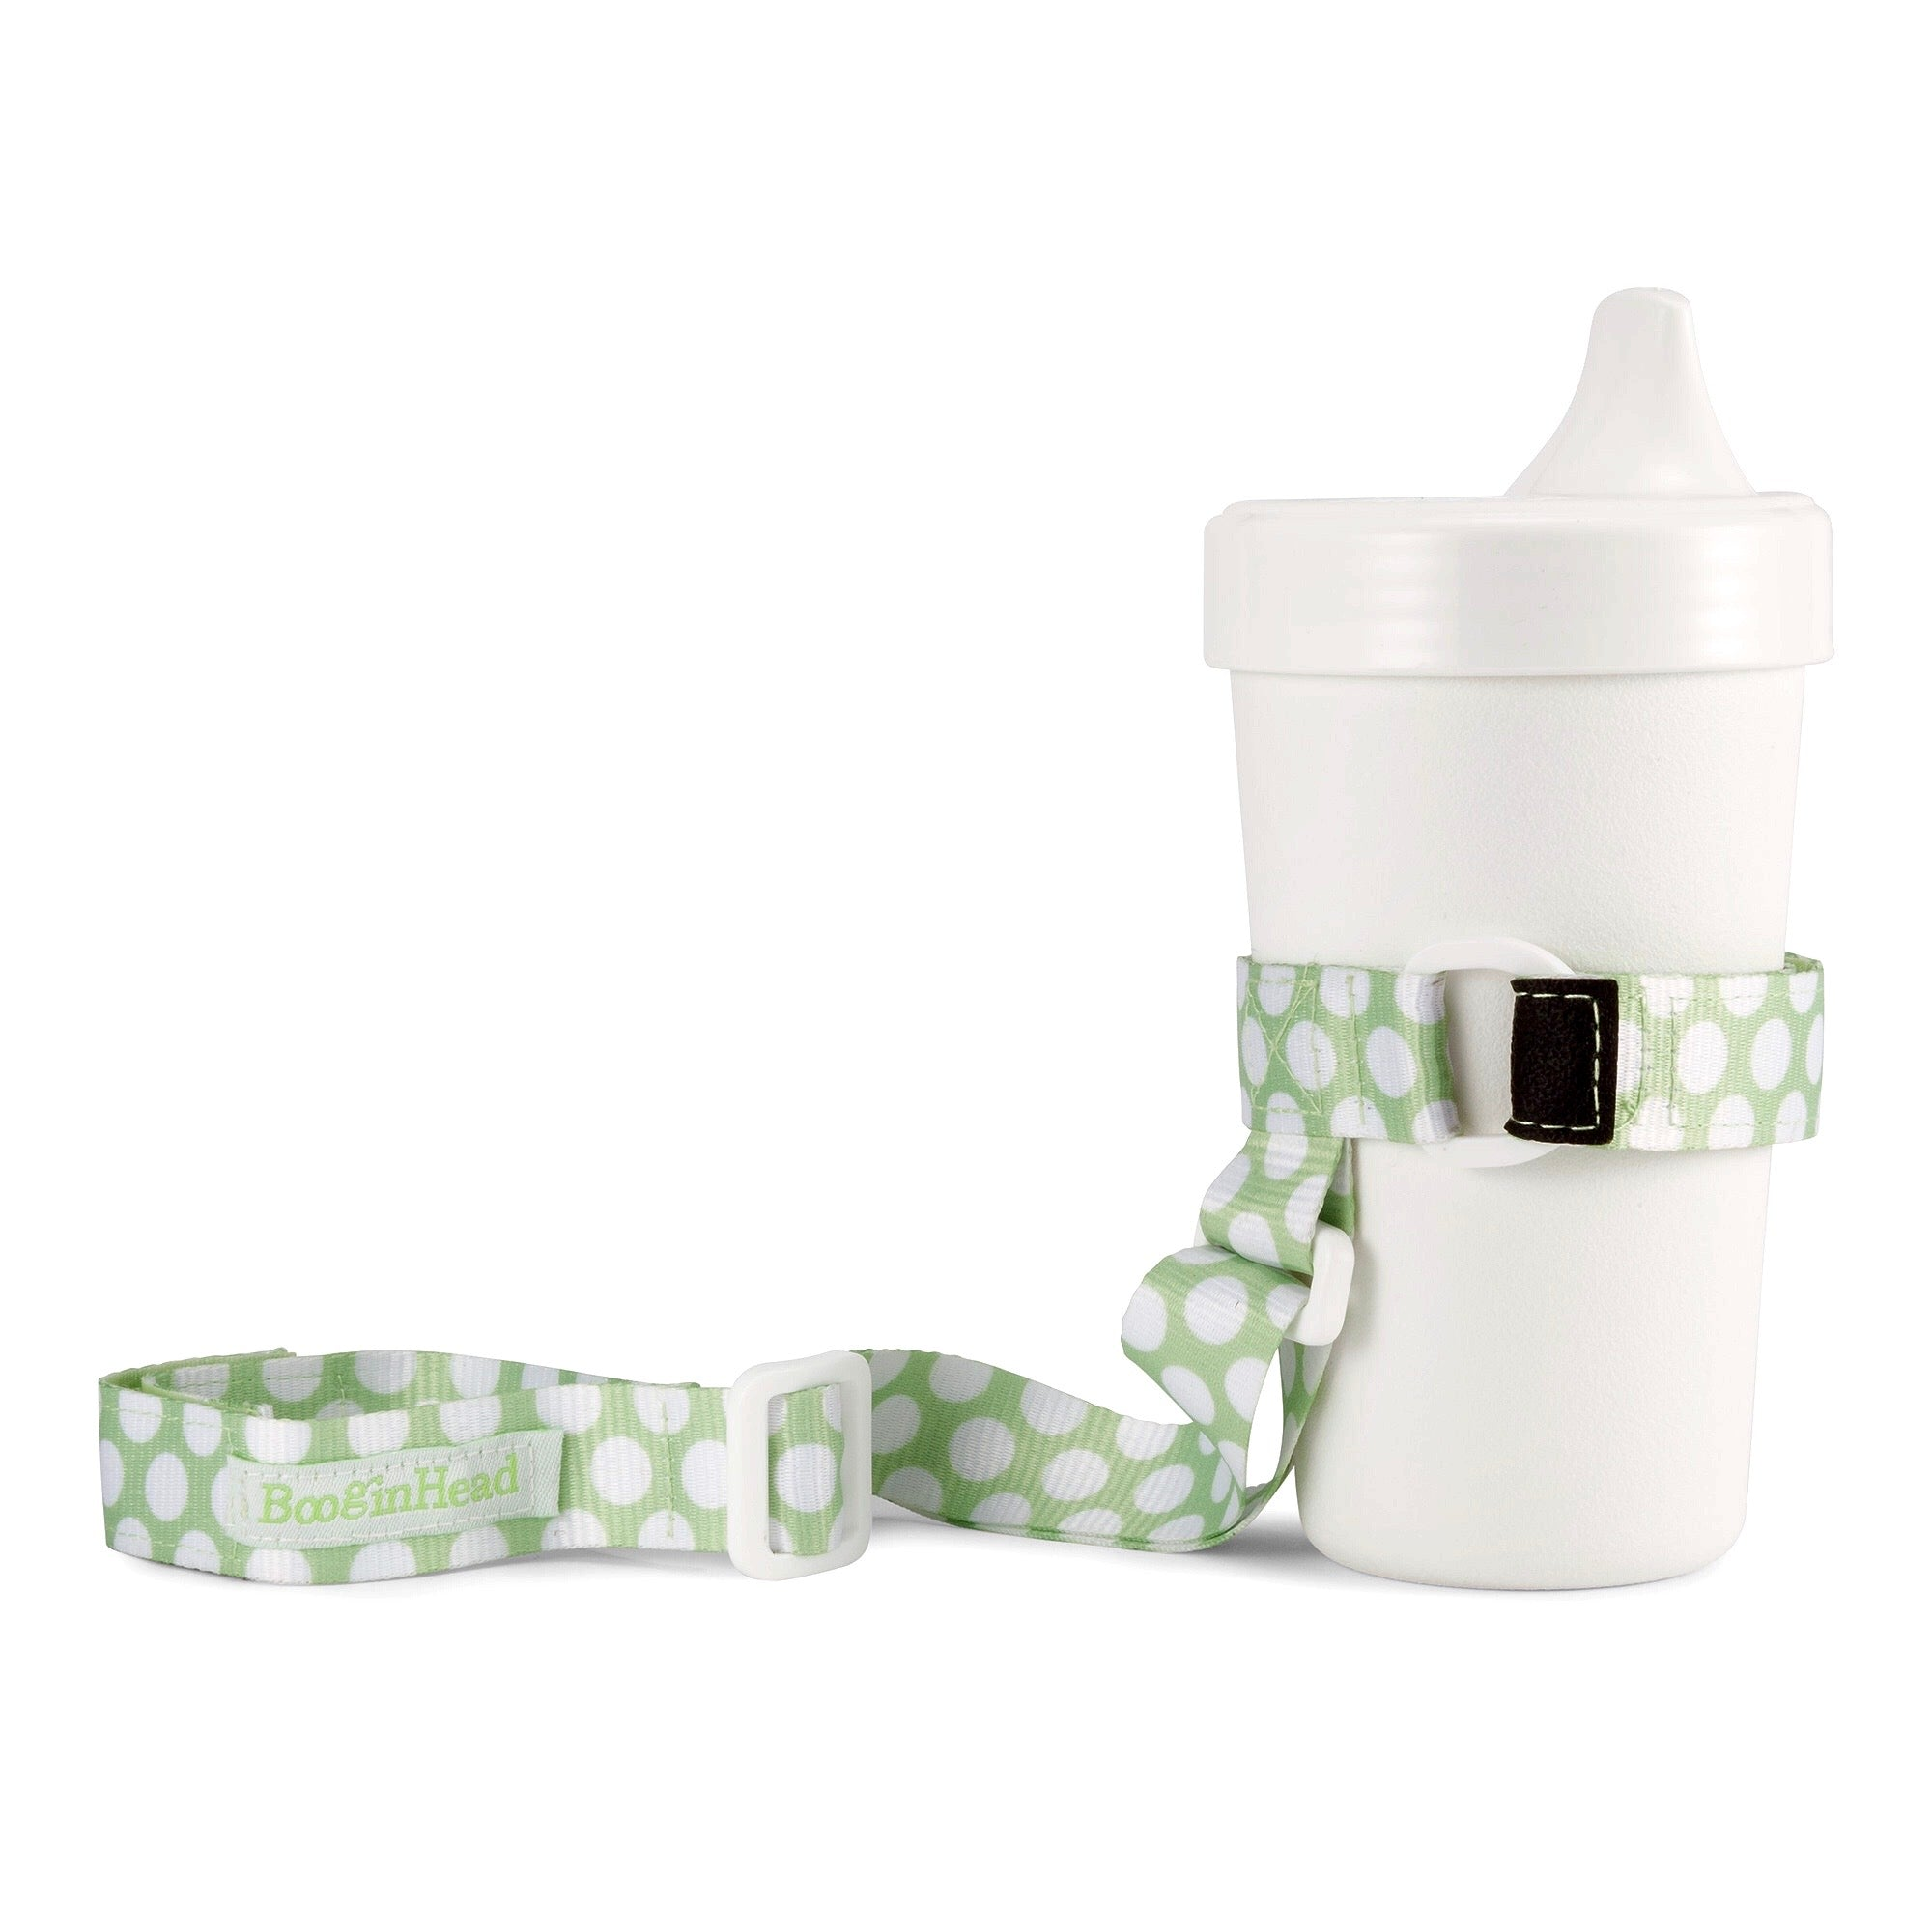 Booginhead SippiGrip for Cup, Bottle, & Toy Teether - Delicate Dot Green